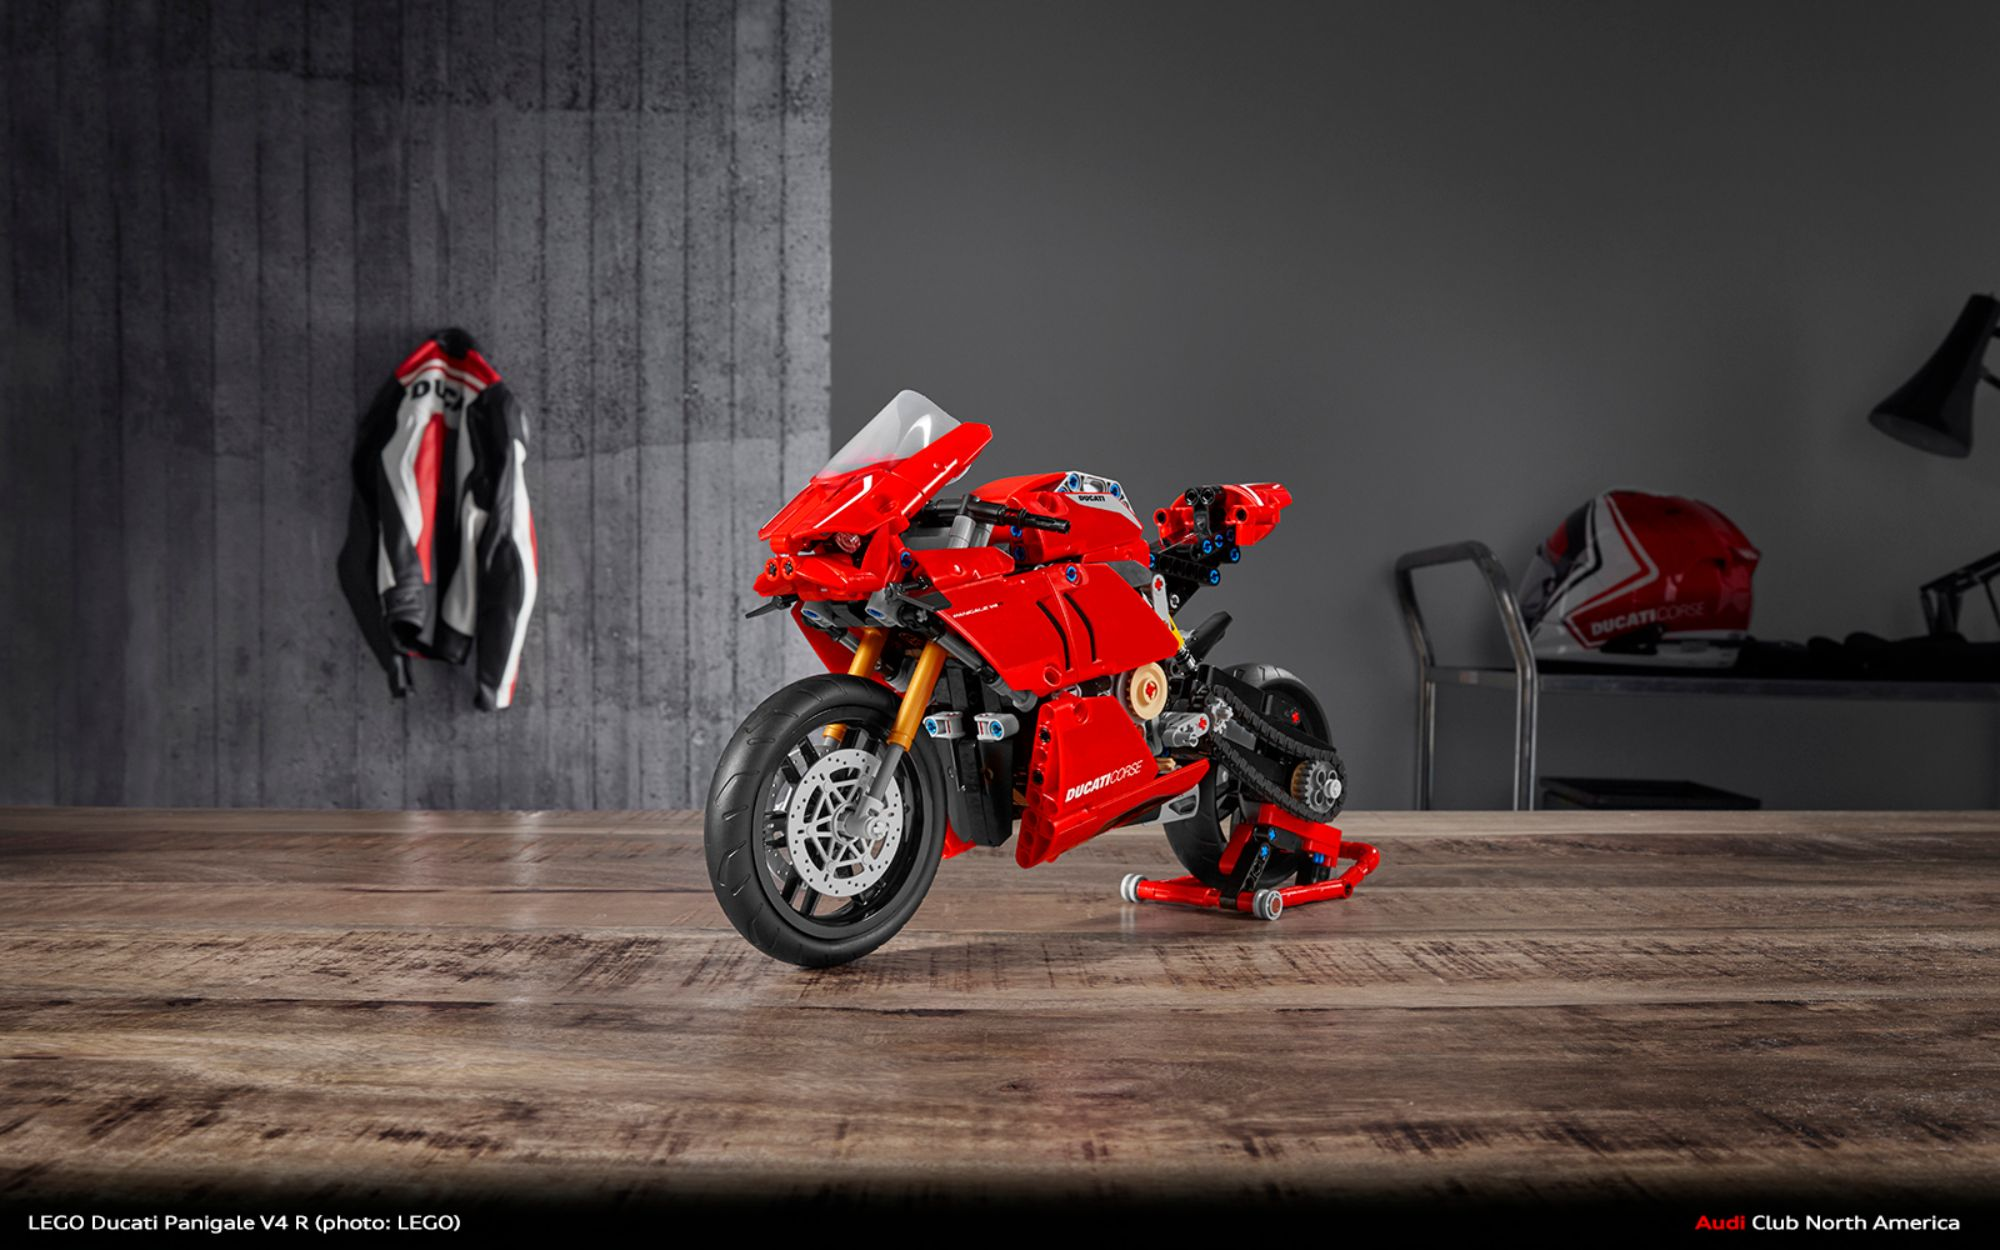 Build Your Own Ducati Panigale V4 R From LEGO